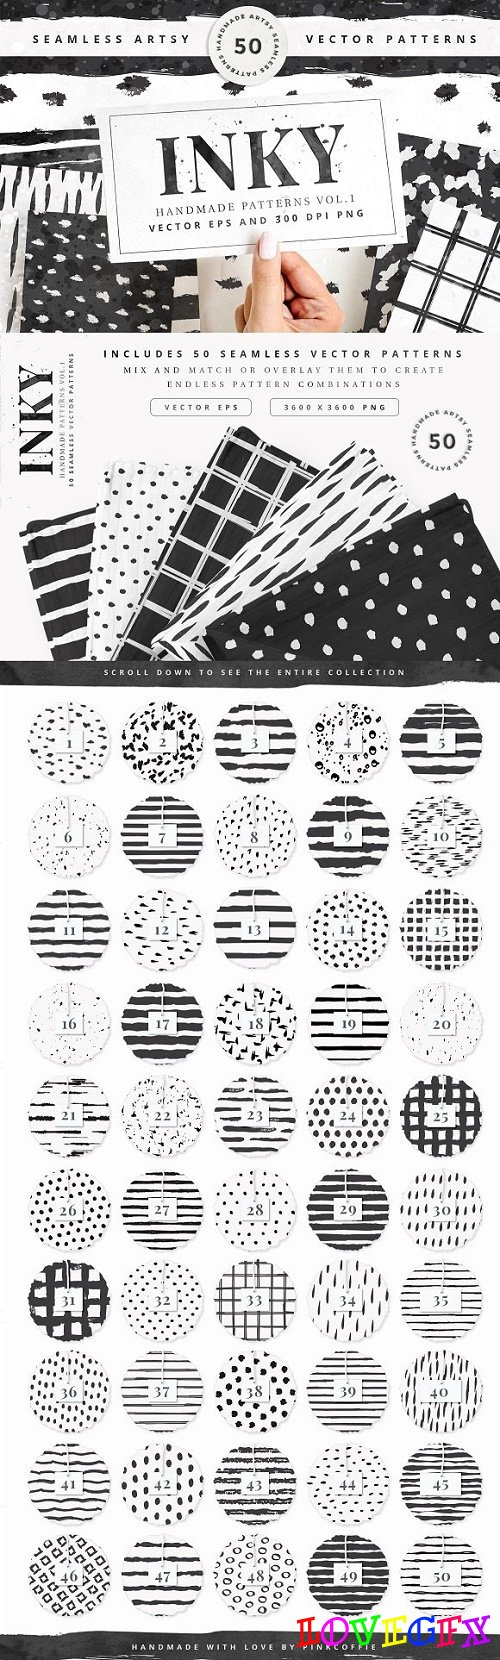 50 Seamless Vector Patterns Vol.1 - 2630219